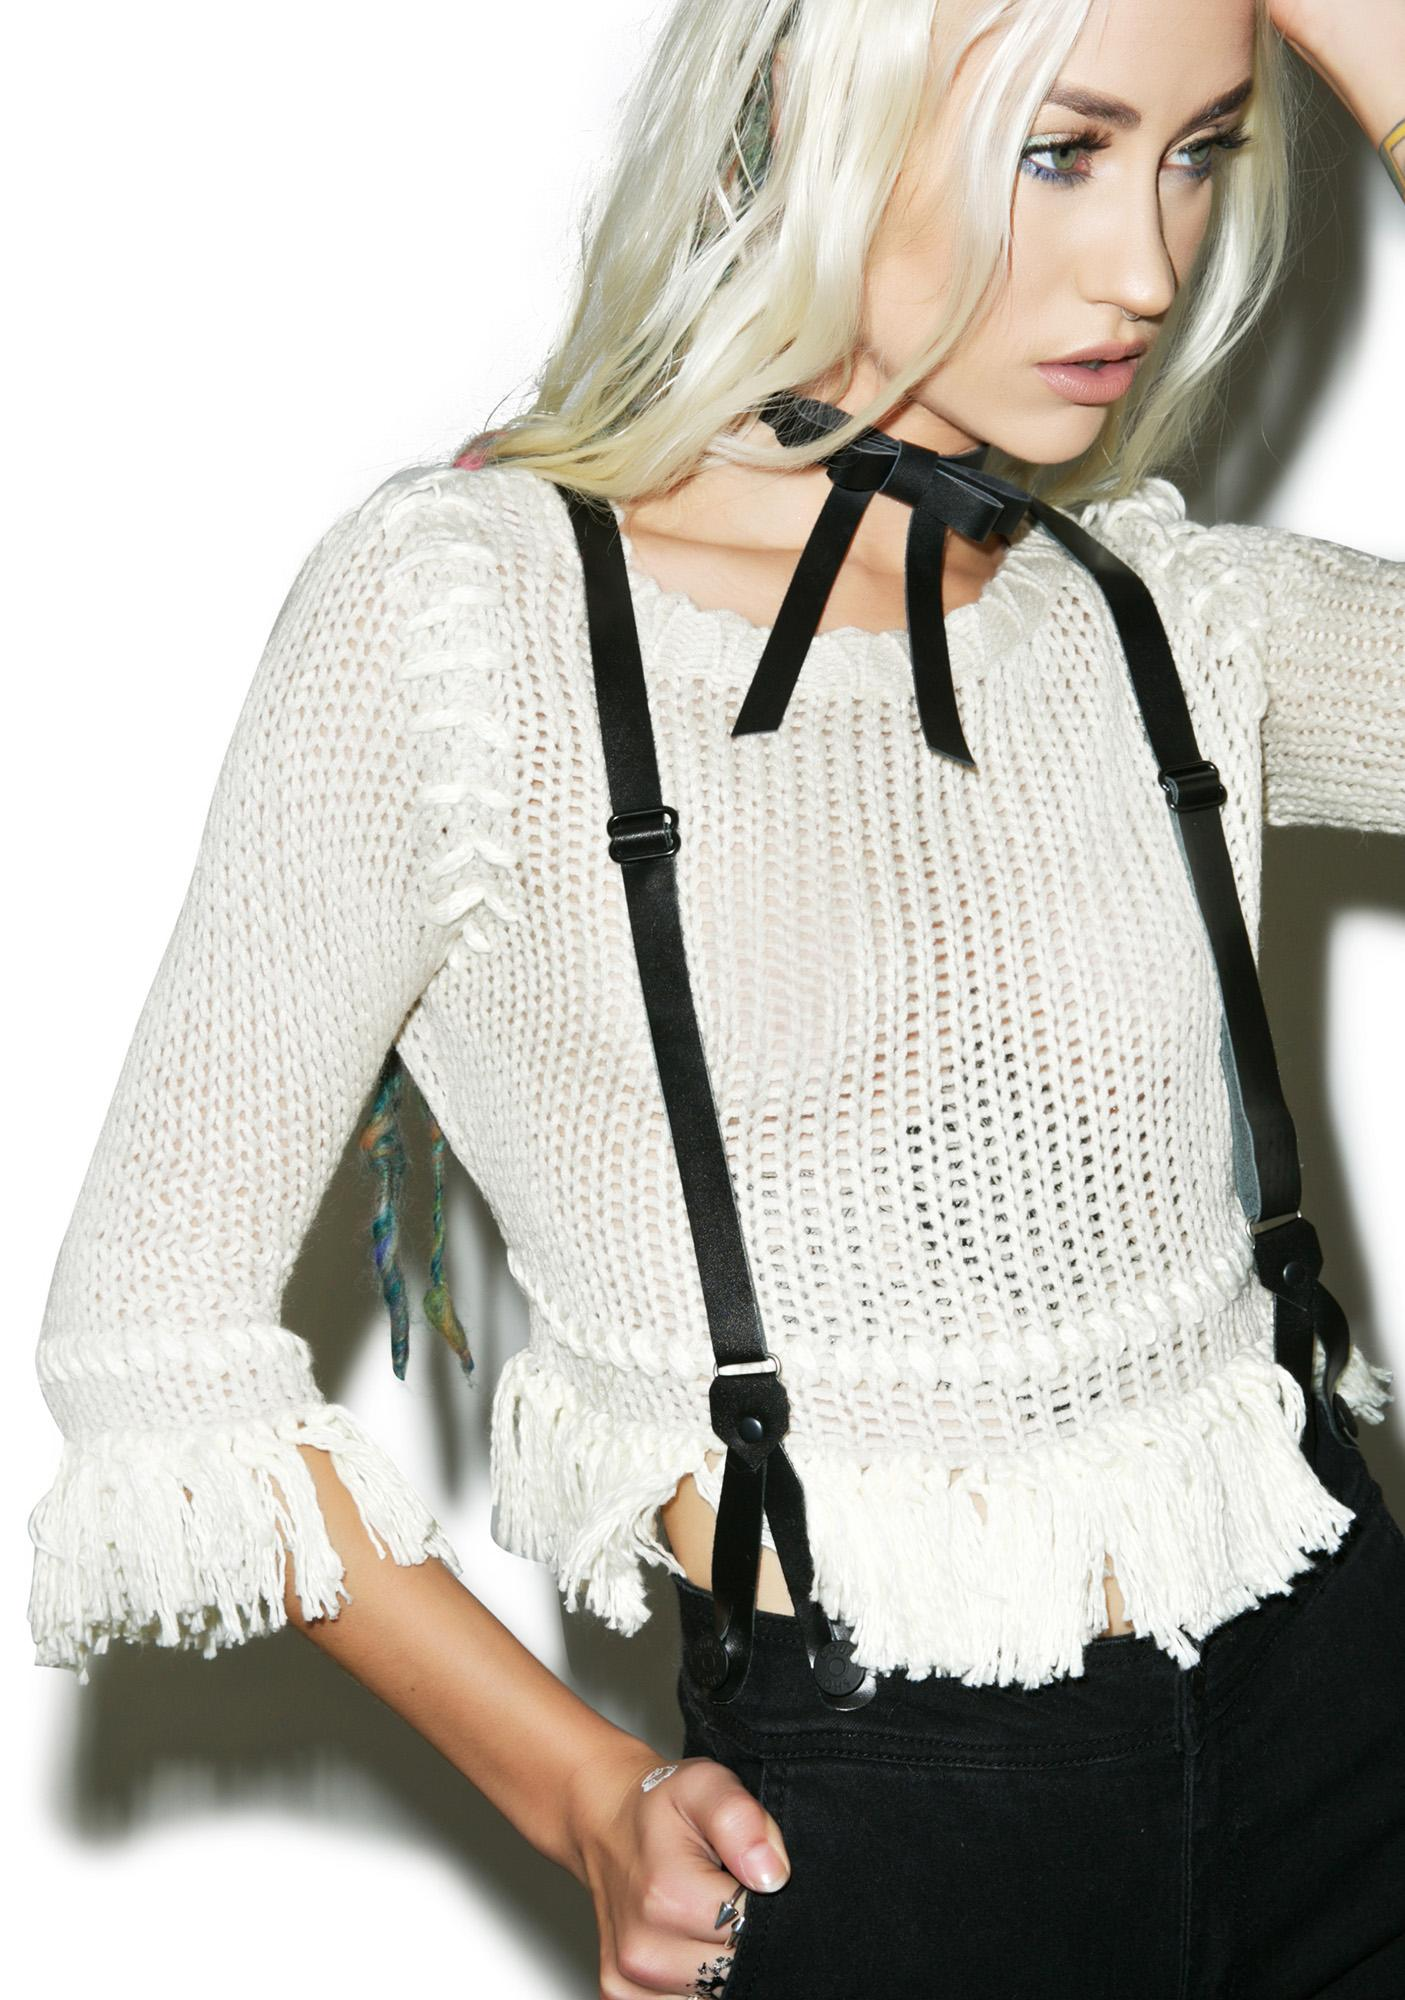 For Love & Lemons Denver Knit Crop Top